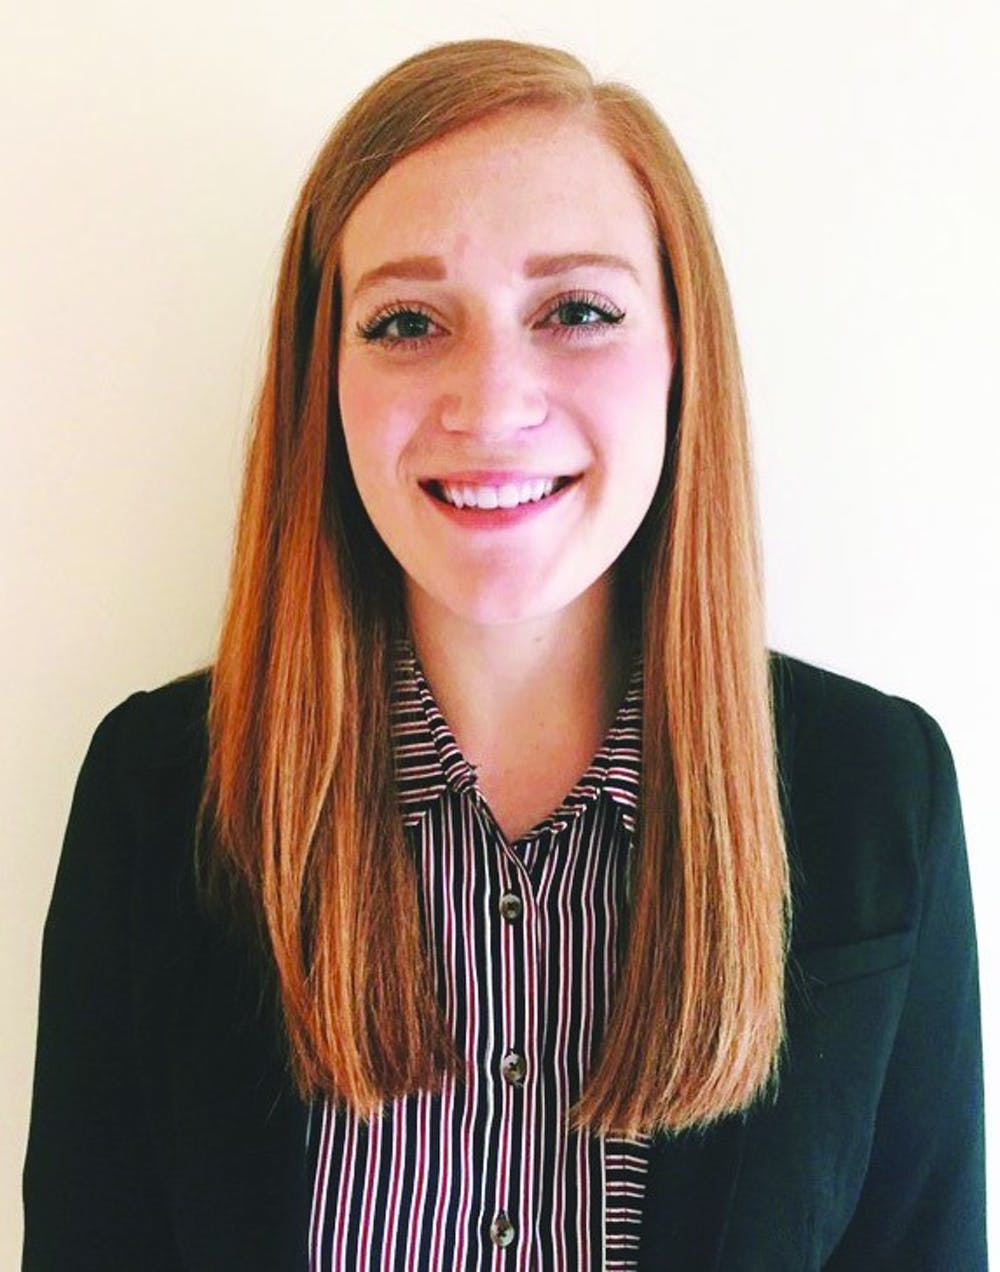 Two Taylor alumni place in top 10 of CPA exam